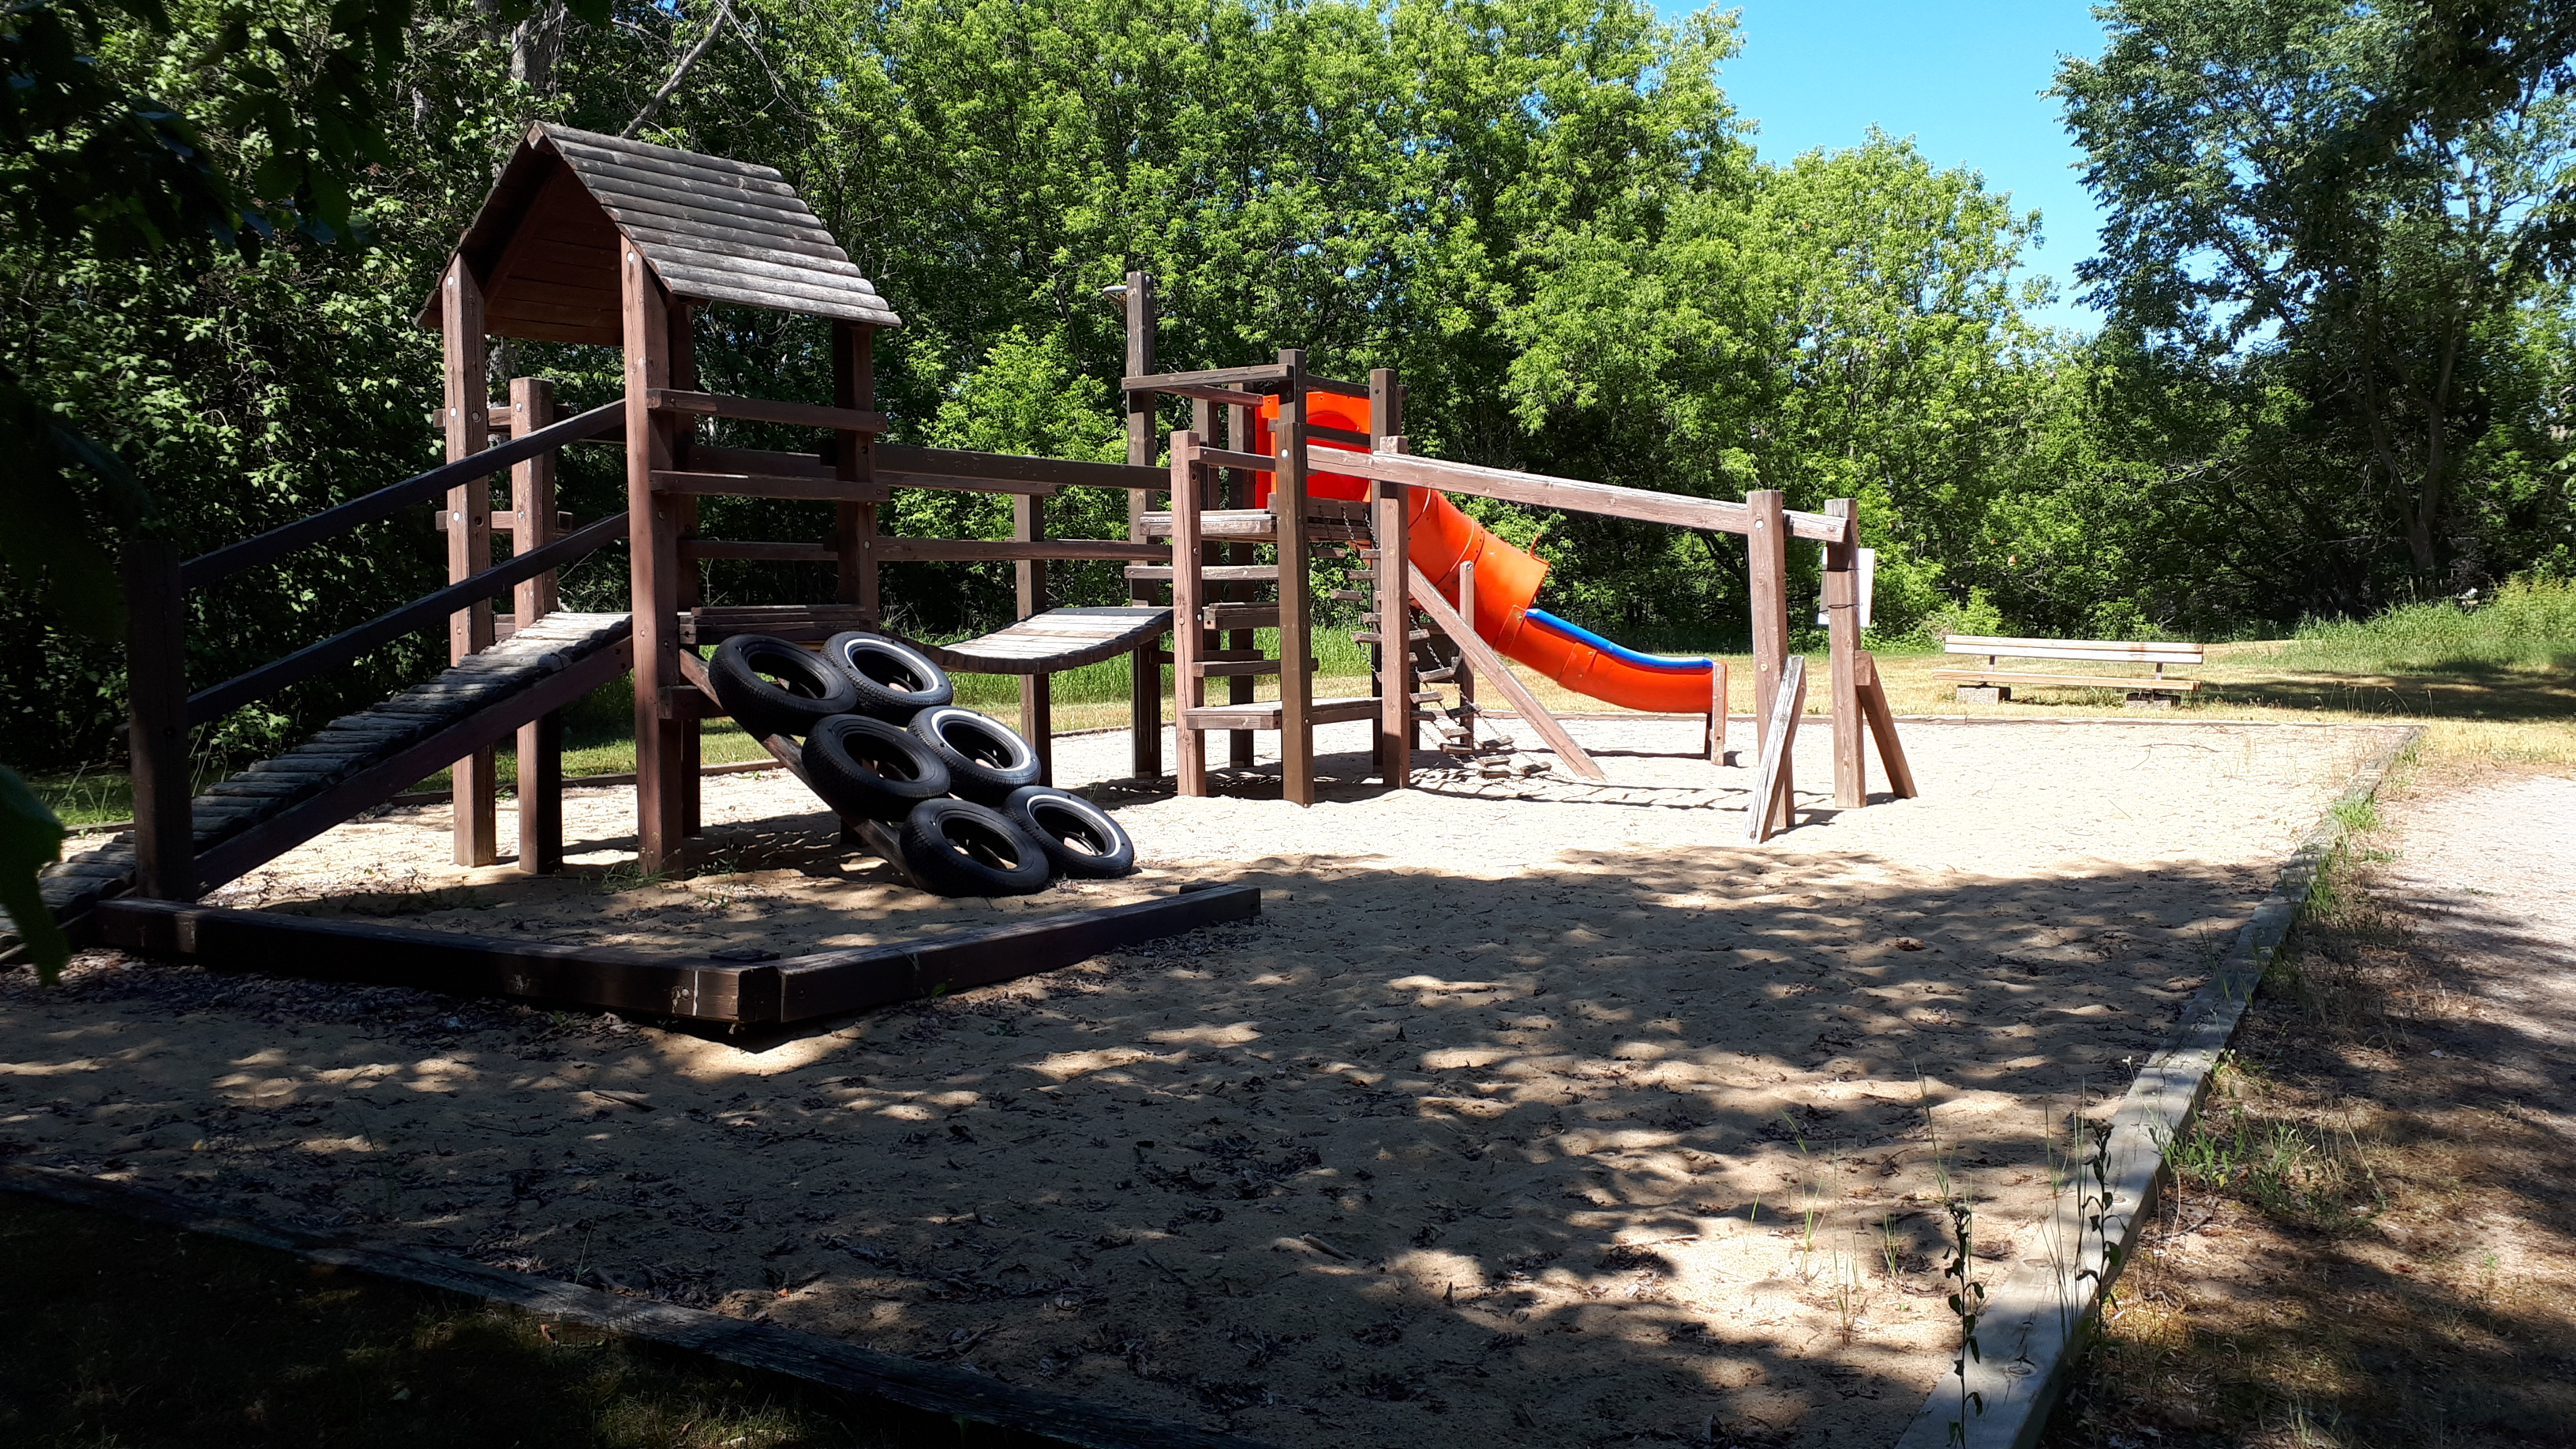 Image of the existing play structure in Green Briar Park.